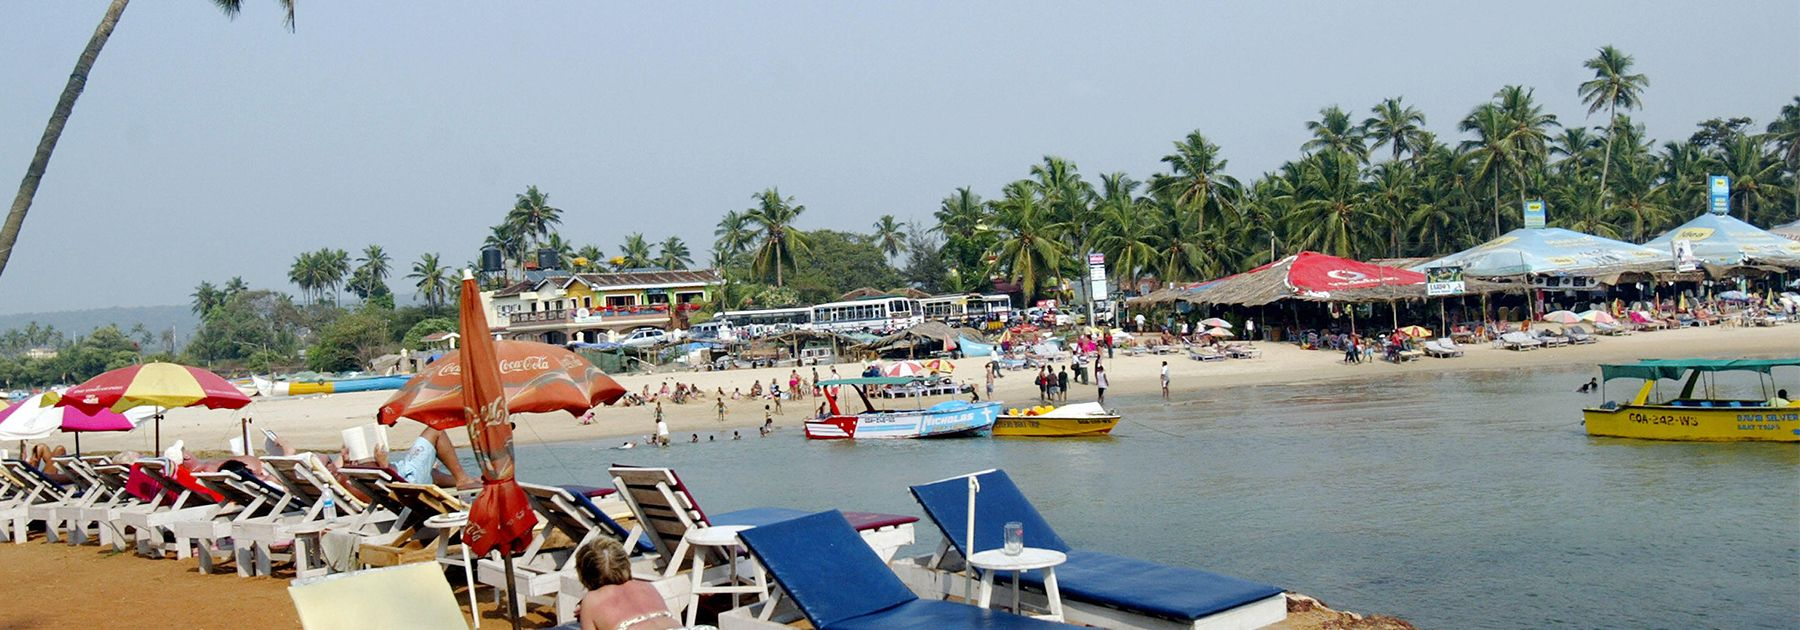 Tourists relax on sunbeds at Baga beach in Goa. (SAJJAD HUSSAIN/AFP/Getty Images)